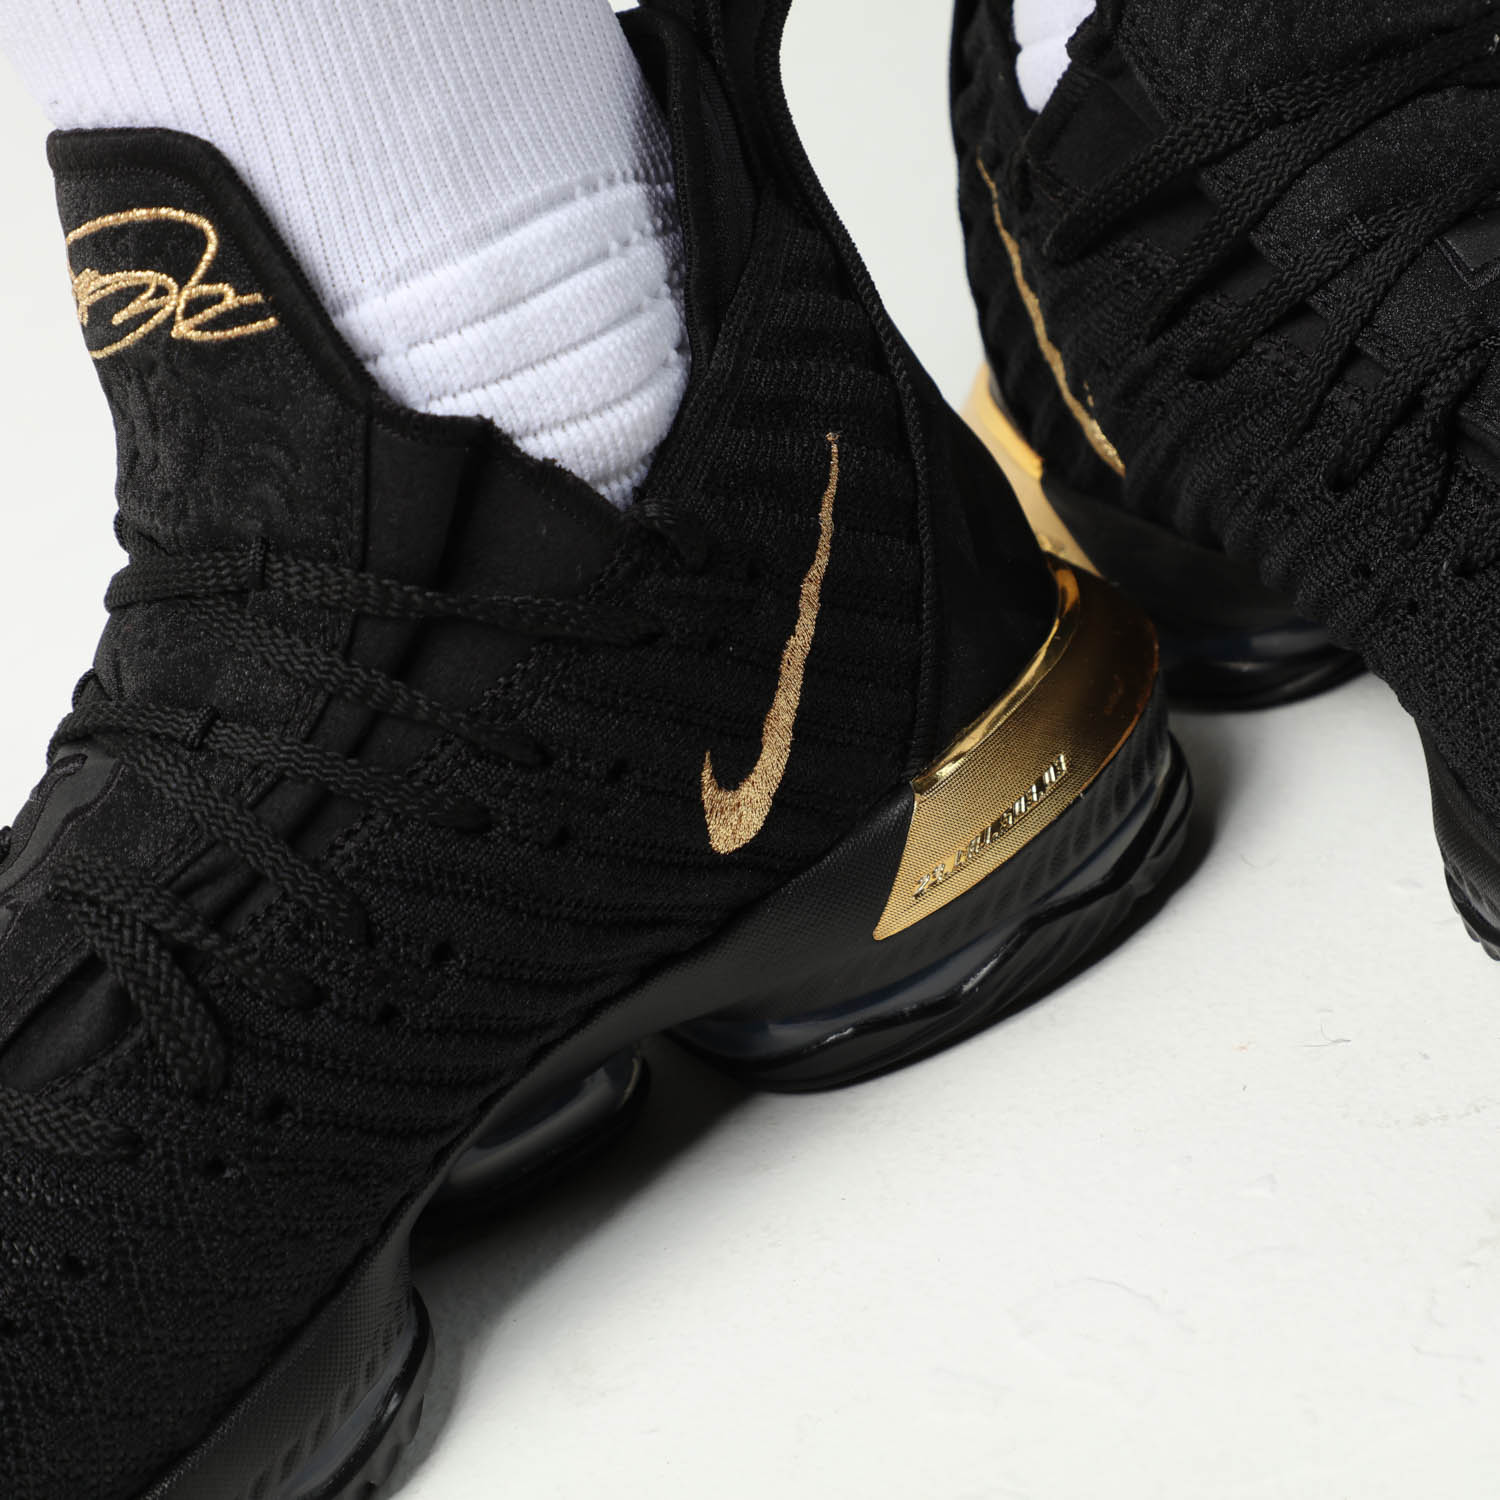 dc8b8f78de4e0 ... impact cushioning and instant responsiveness fit for a King. Designed  for one of the greatest to ever play the game, the LeBron XVI's are packed  with ...